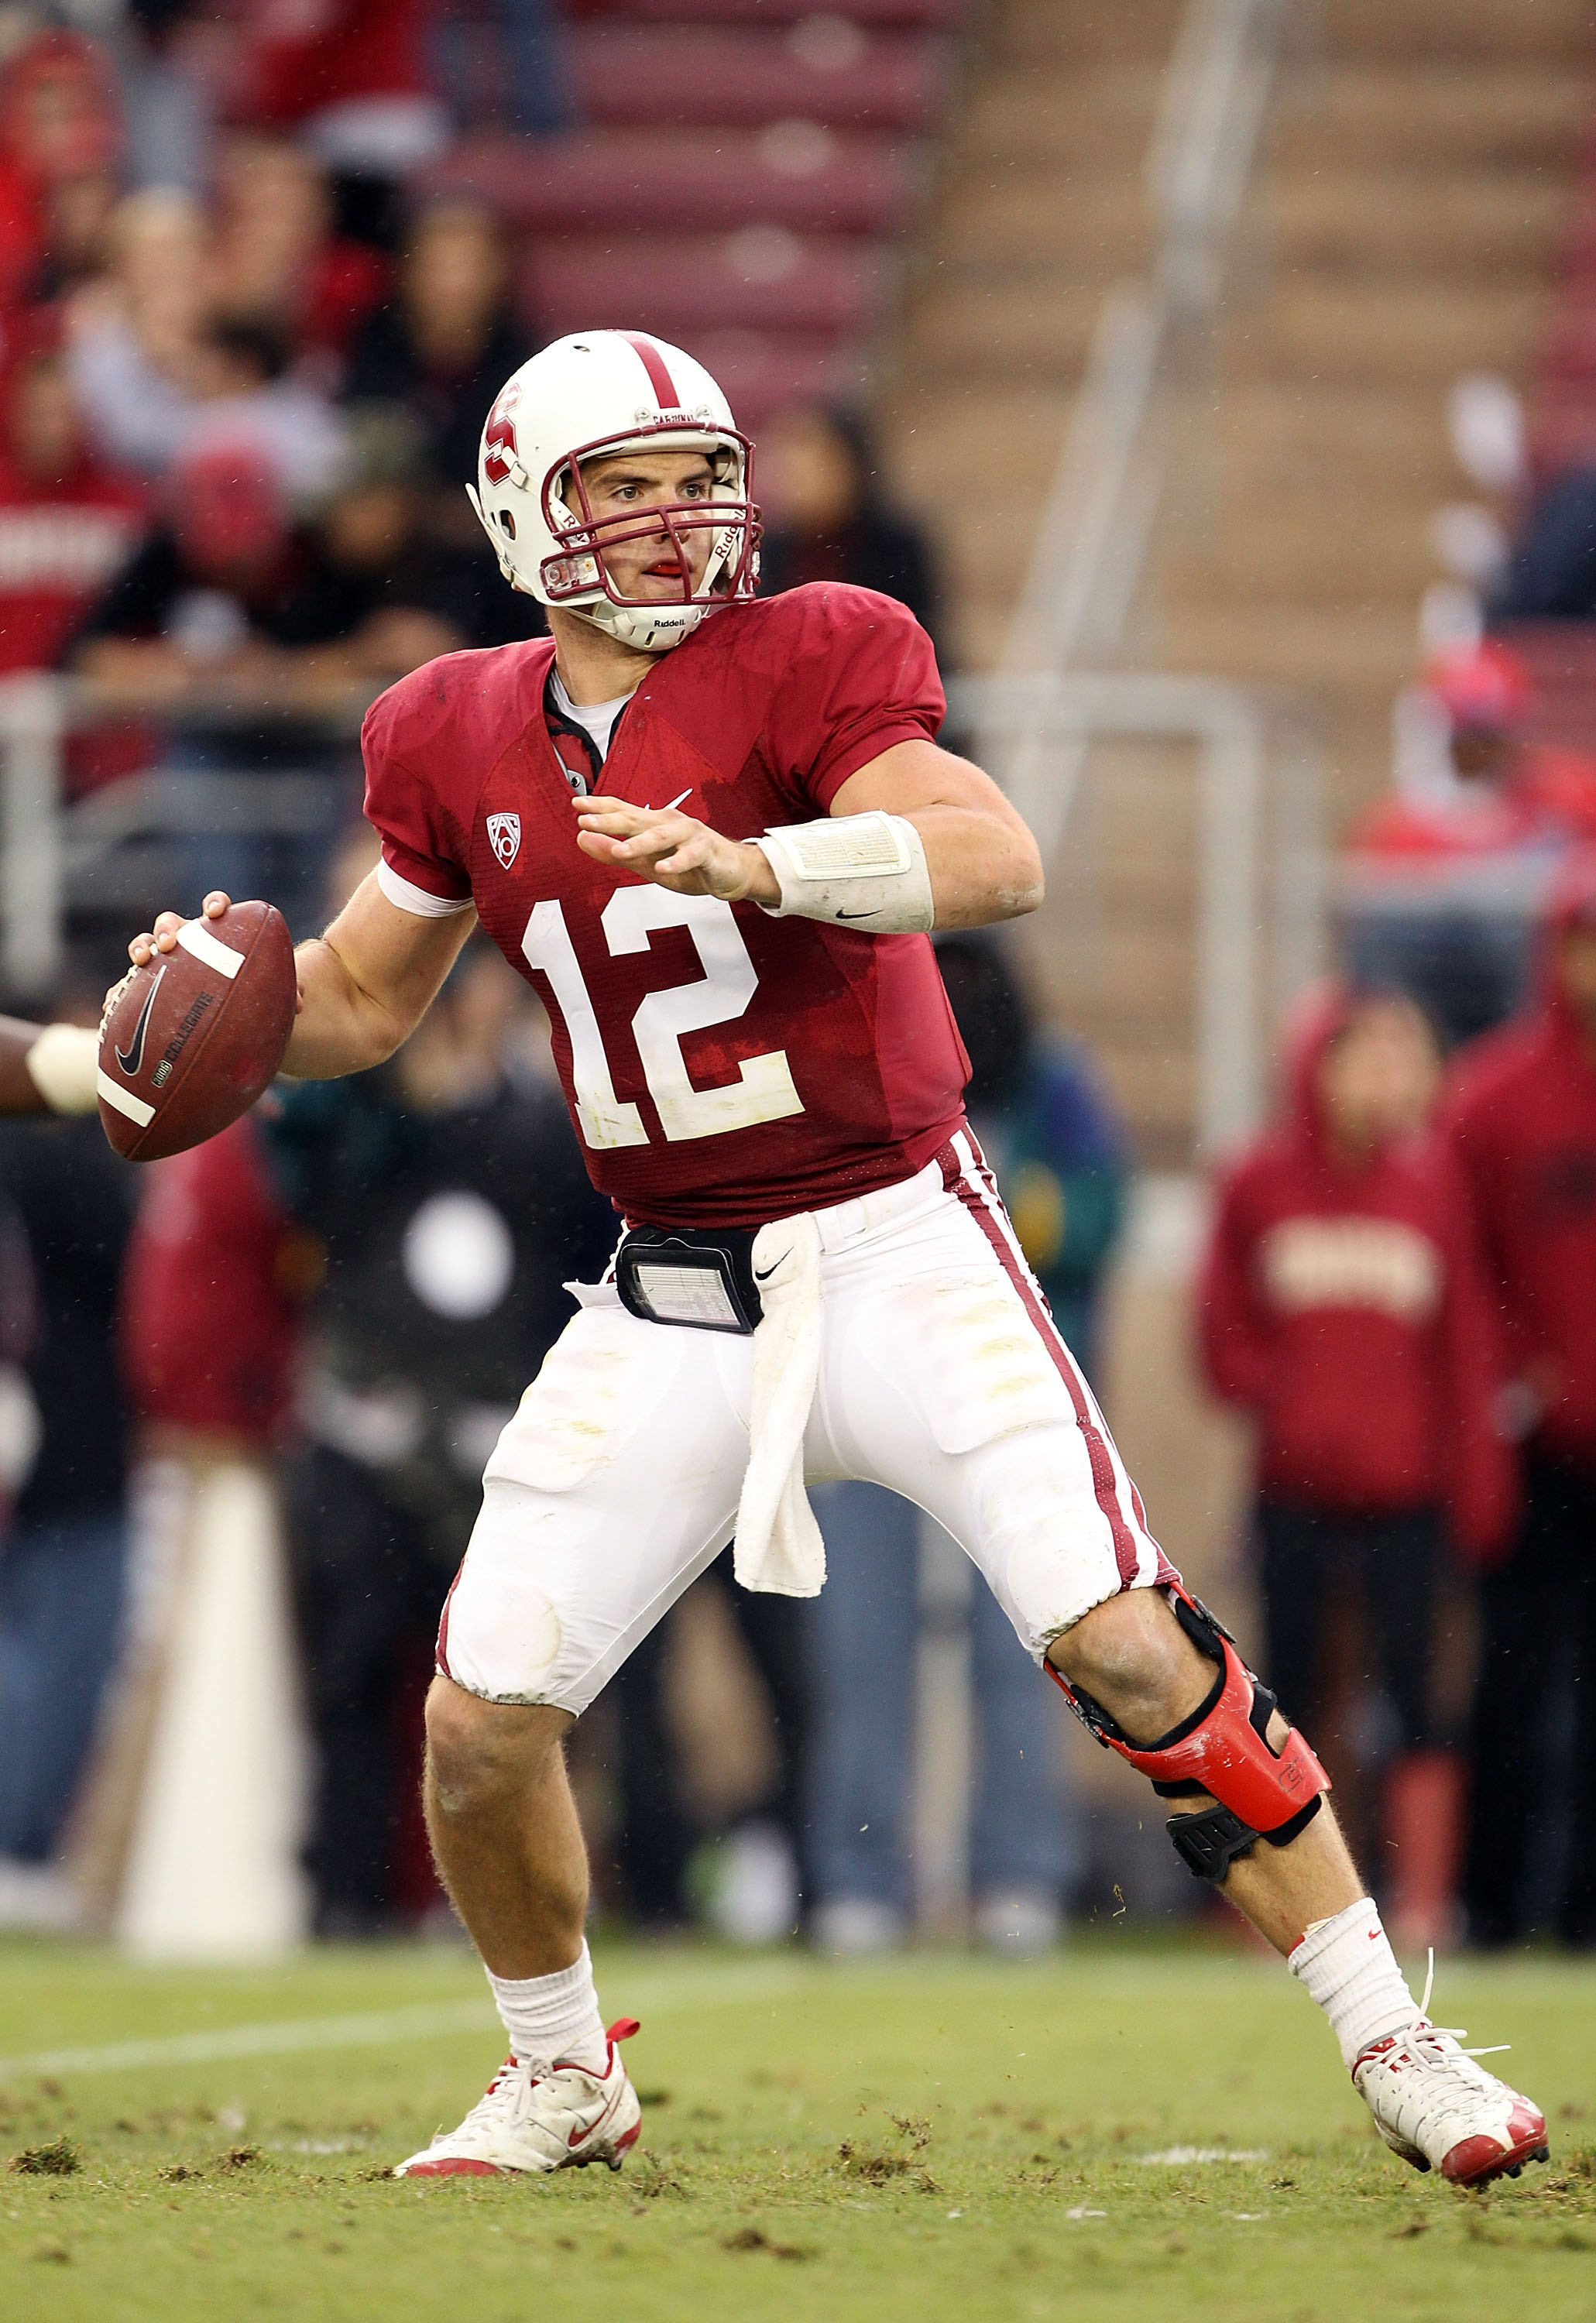 PALO ALTO, CA - OCTOBER 23:  Andrew Luck #12 of the Stanford Cardinal passes the ball against the Washington State Cougars at Stanford Stadium on October 23, 2010 in Palo Alto, California.  (Photo by Ezra Shaw/Getty Images)